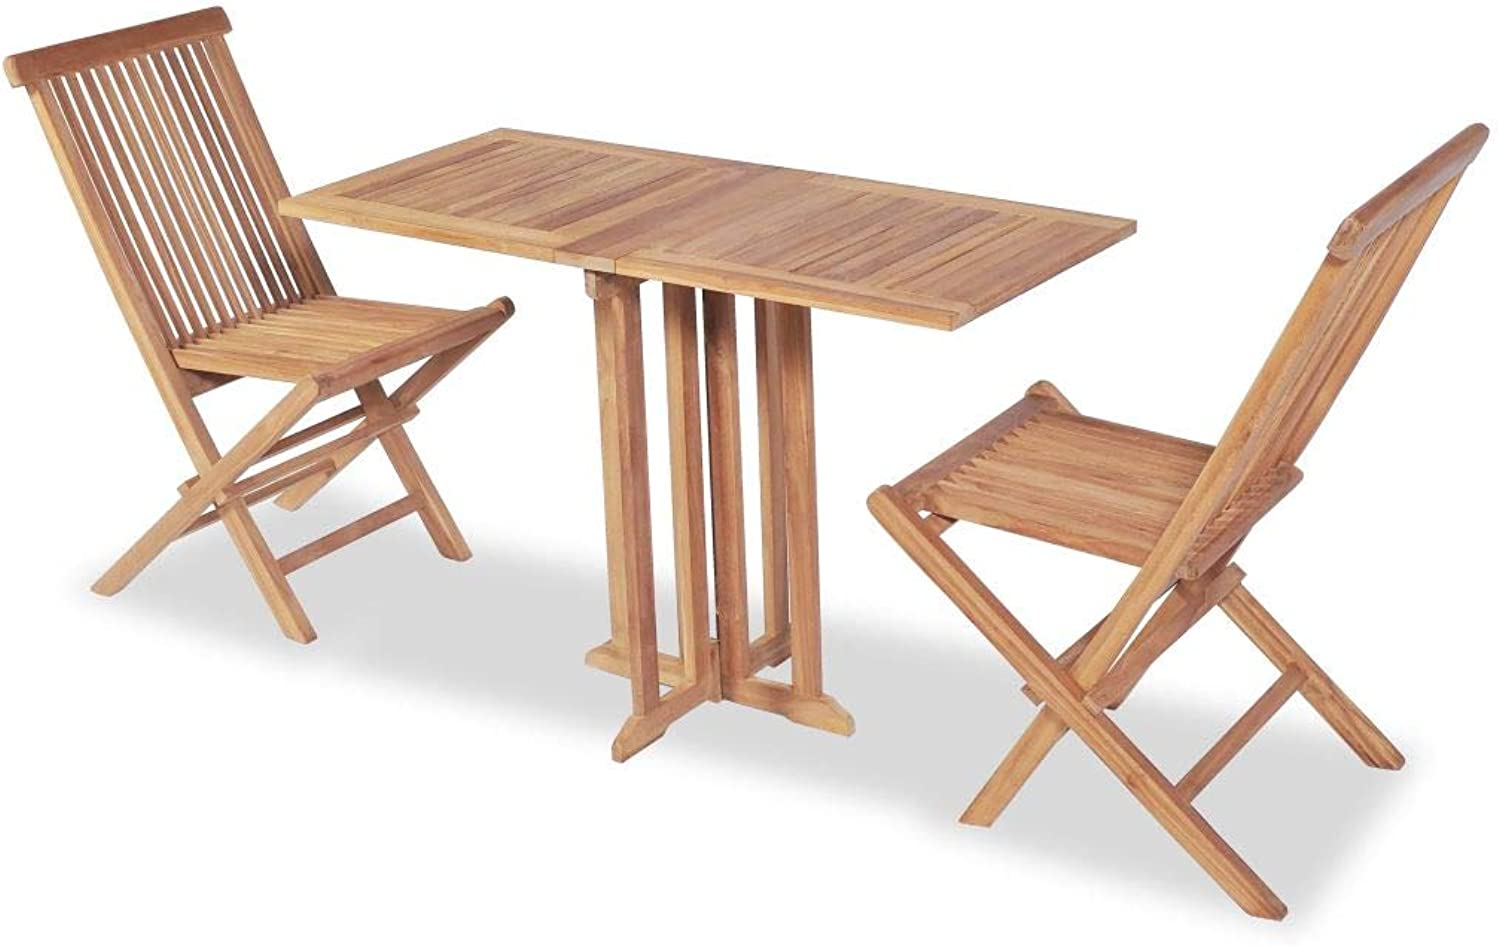 VidaXL Teak 3PC Balcony Dining Breakfast Set Folding Table Chairs Outdoor Garden